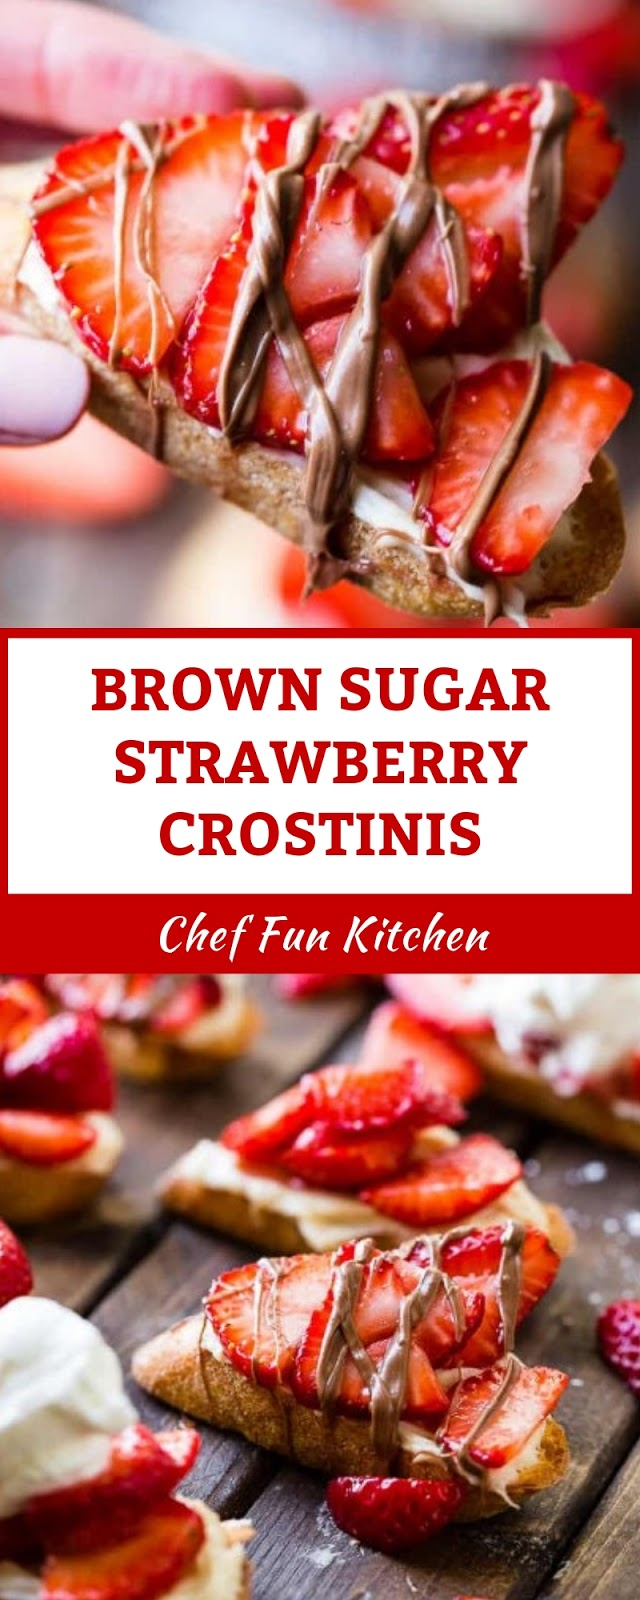 BROWN SUGAR STRAWBERRY CROSTINIS